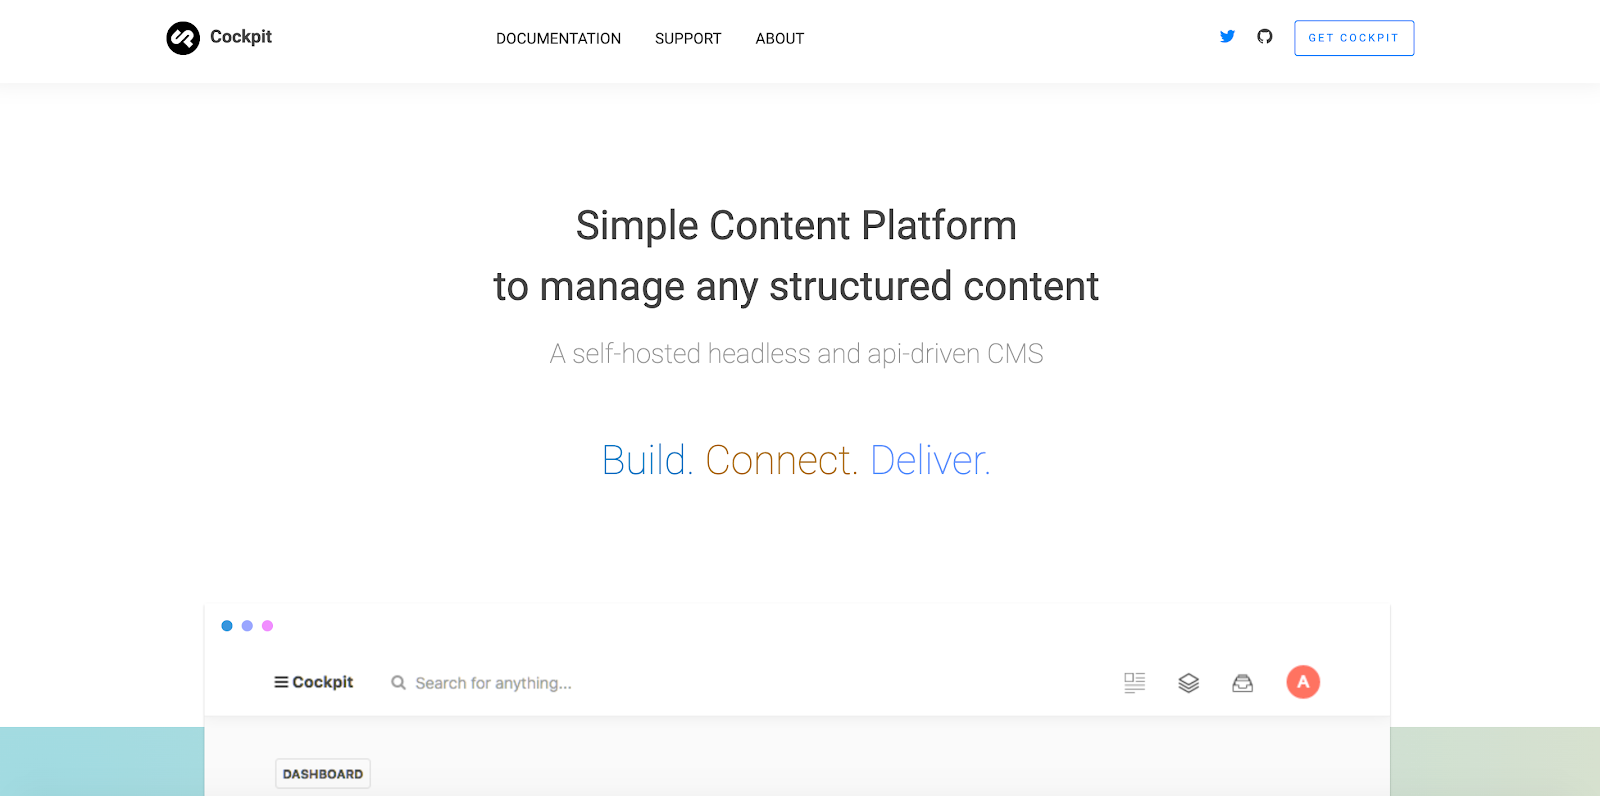 Coming in 13th is the API-first Cockpit CMS, free to download and simple to use